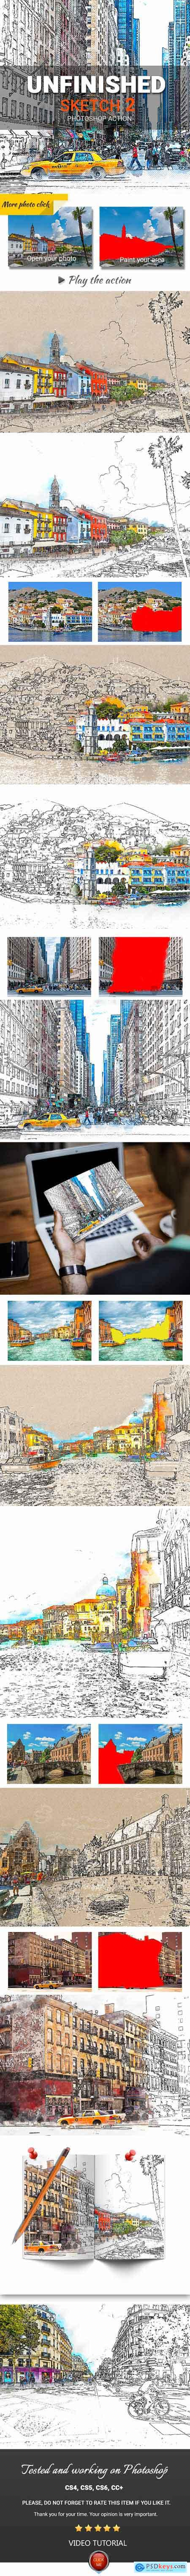 Graphicriver Urban Sketch2 Photoshop Action